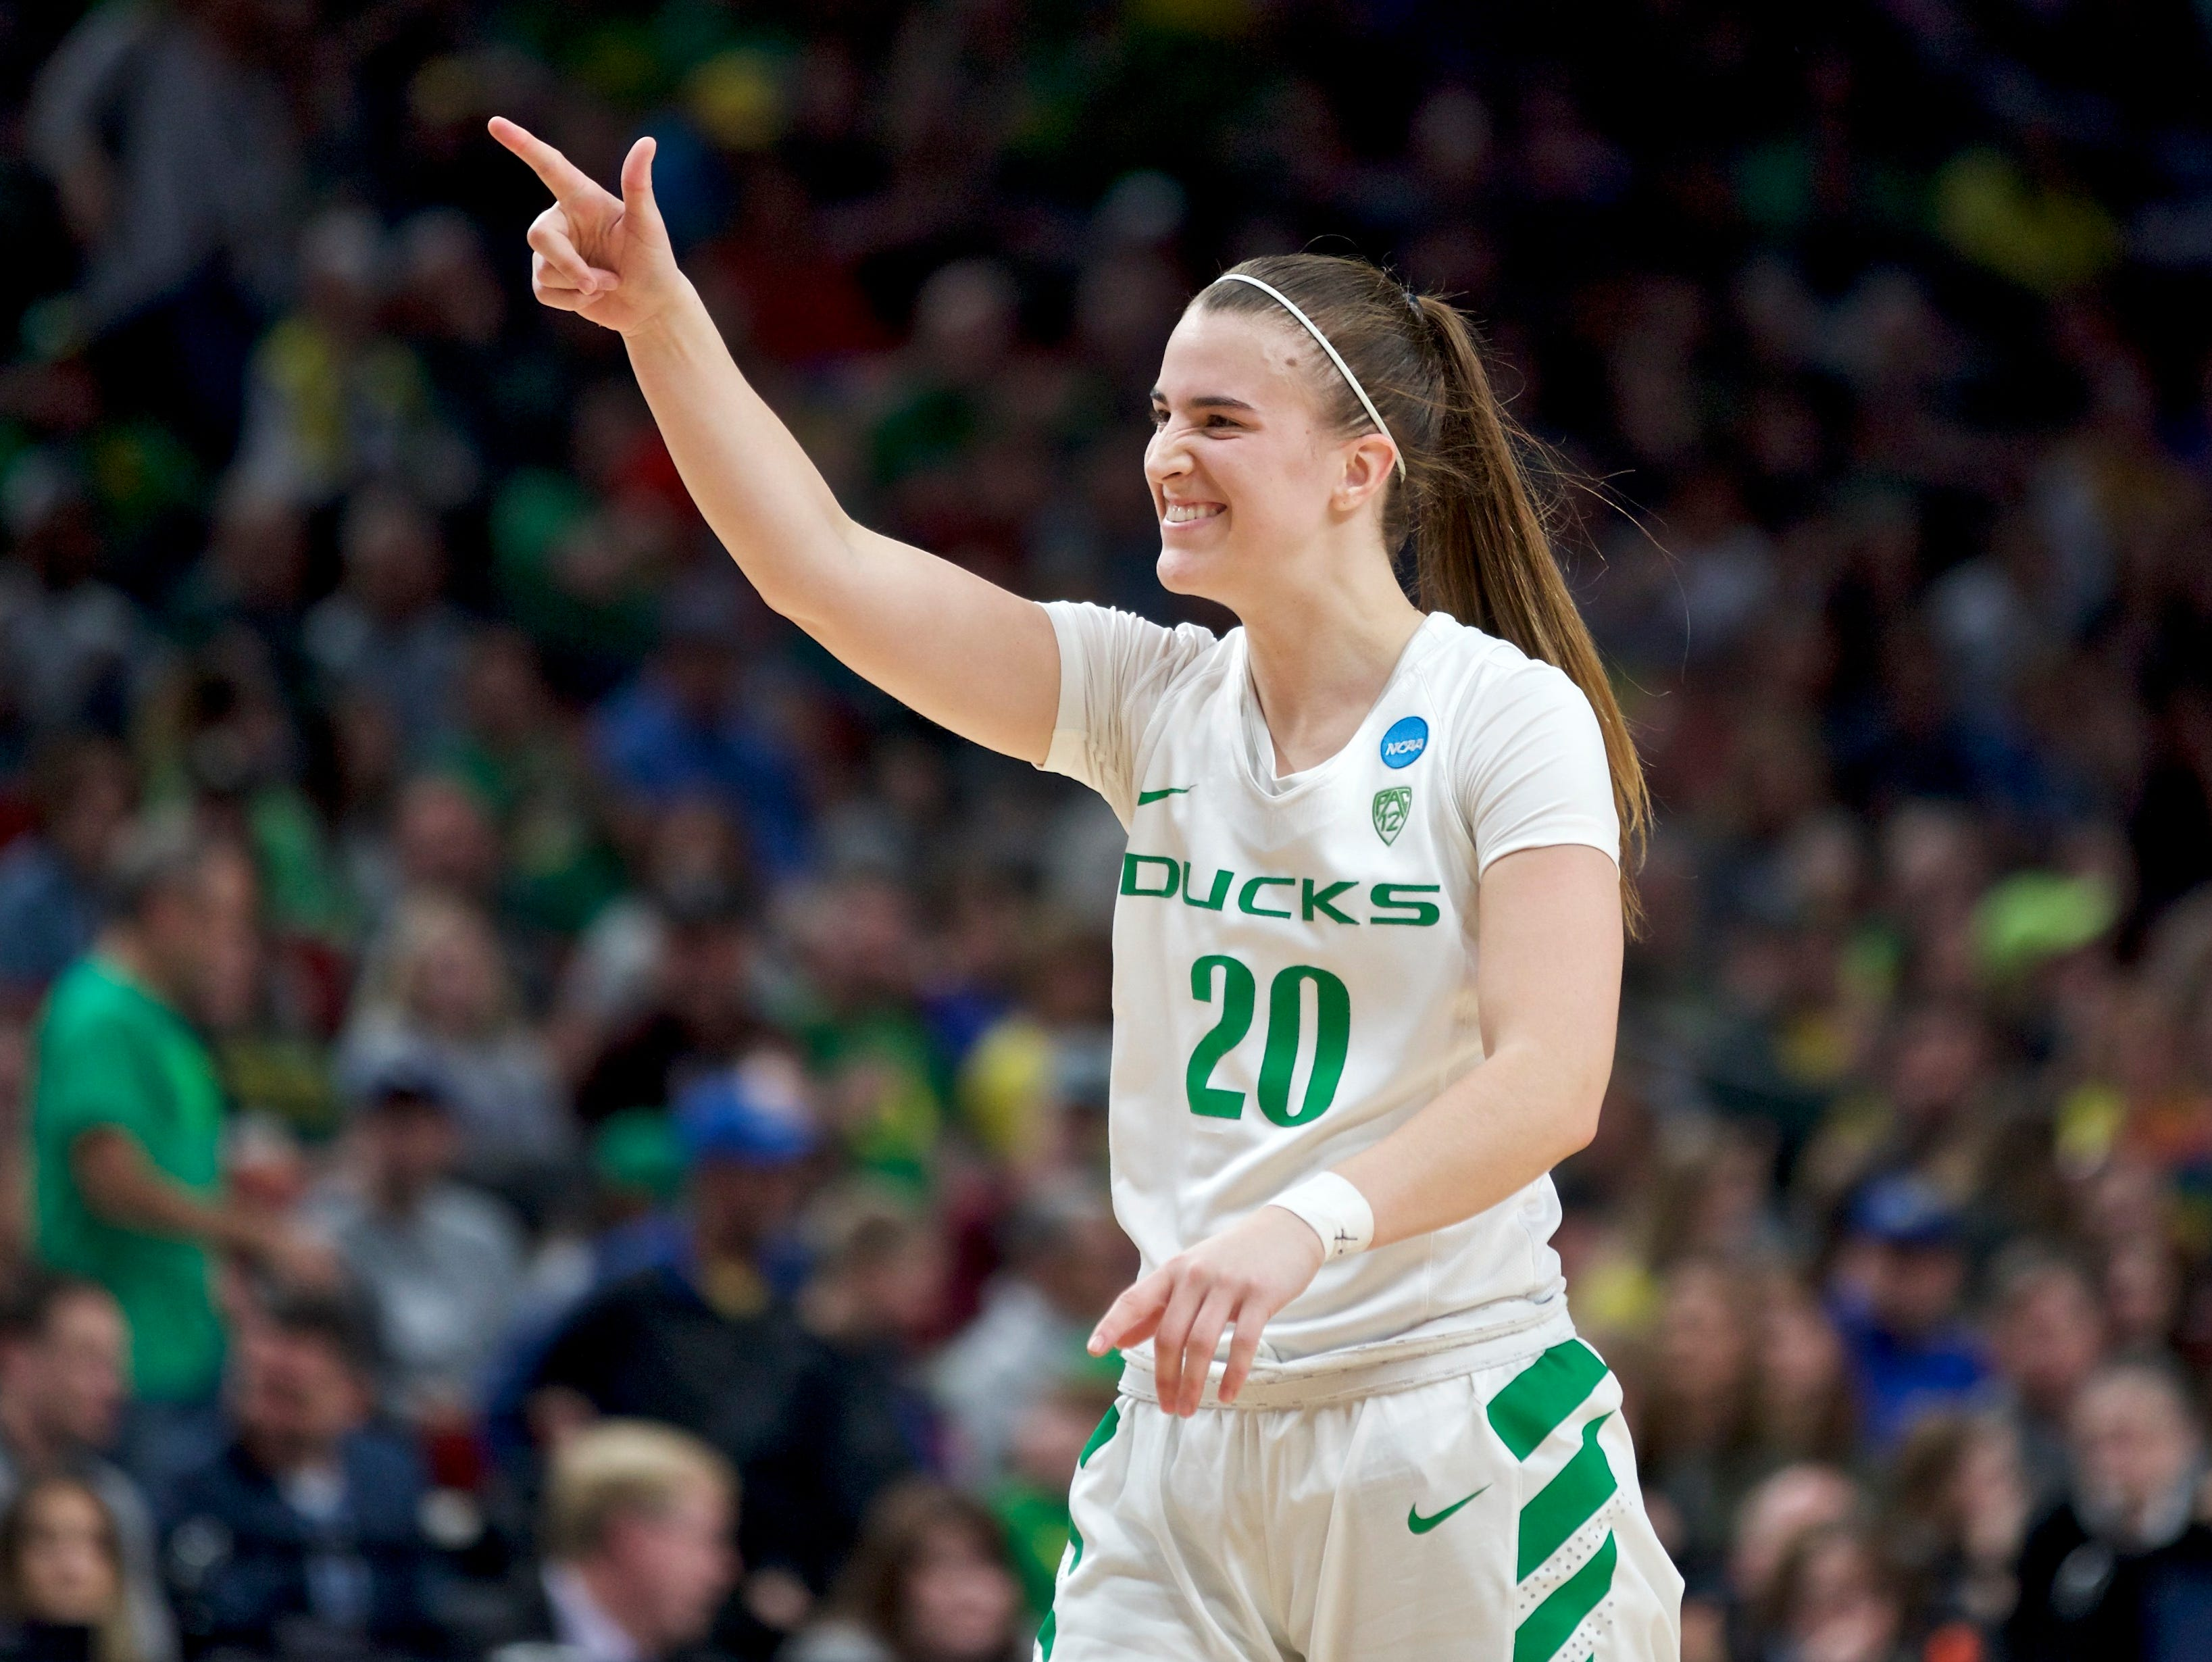 Oregon guard Sabrina Ionescu gestures toward the bench during the second half of the team's regional semifinal against South Dakota State in the NCAA women's college basketball tournament Friday, March 29, 2019, in Portland, Ore. Oregon won 63-53. (AP Photo/Craig Mitchelldyer)